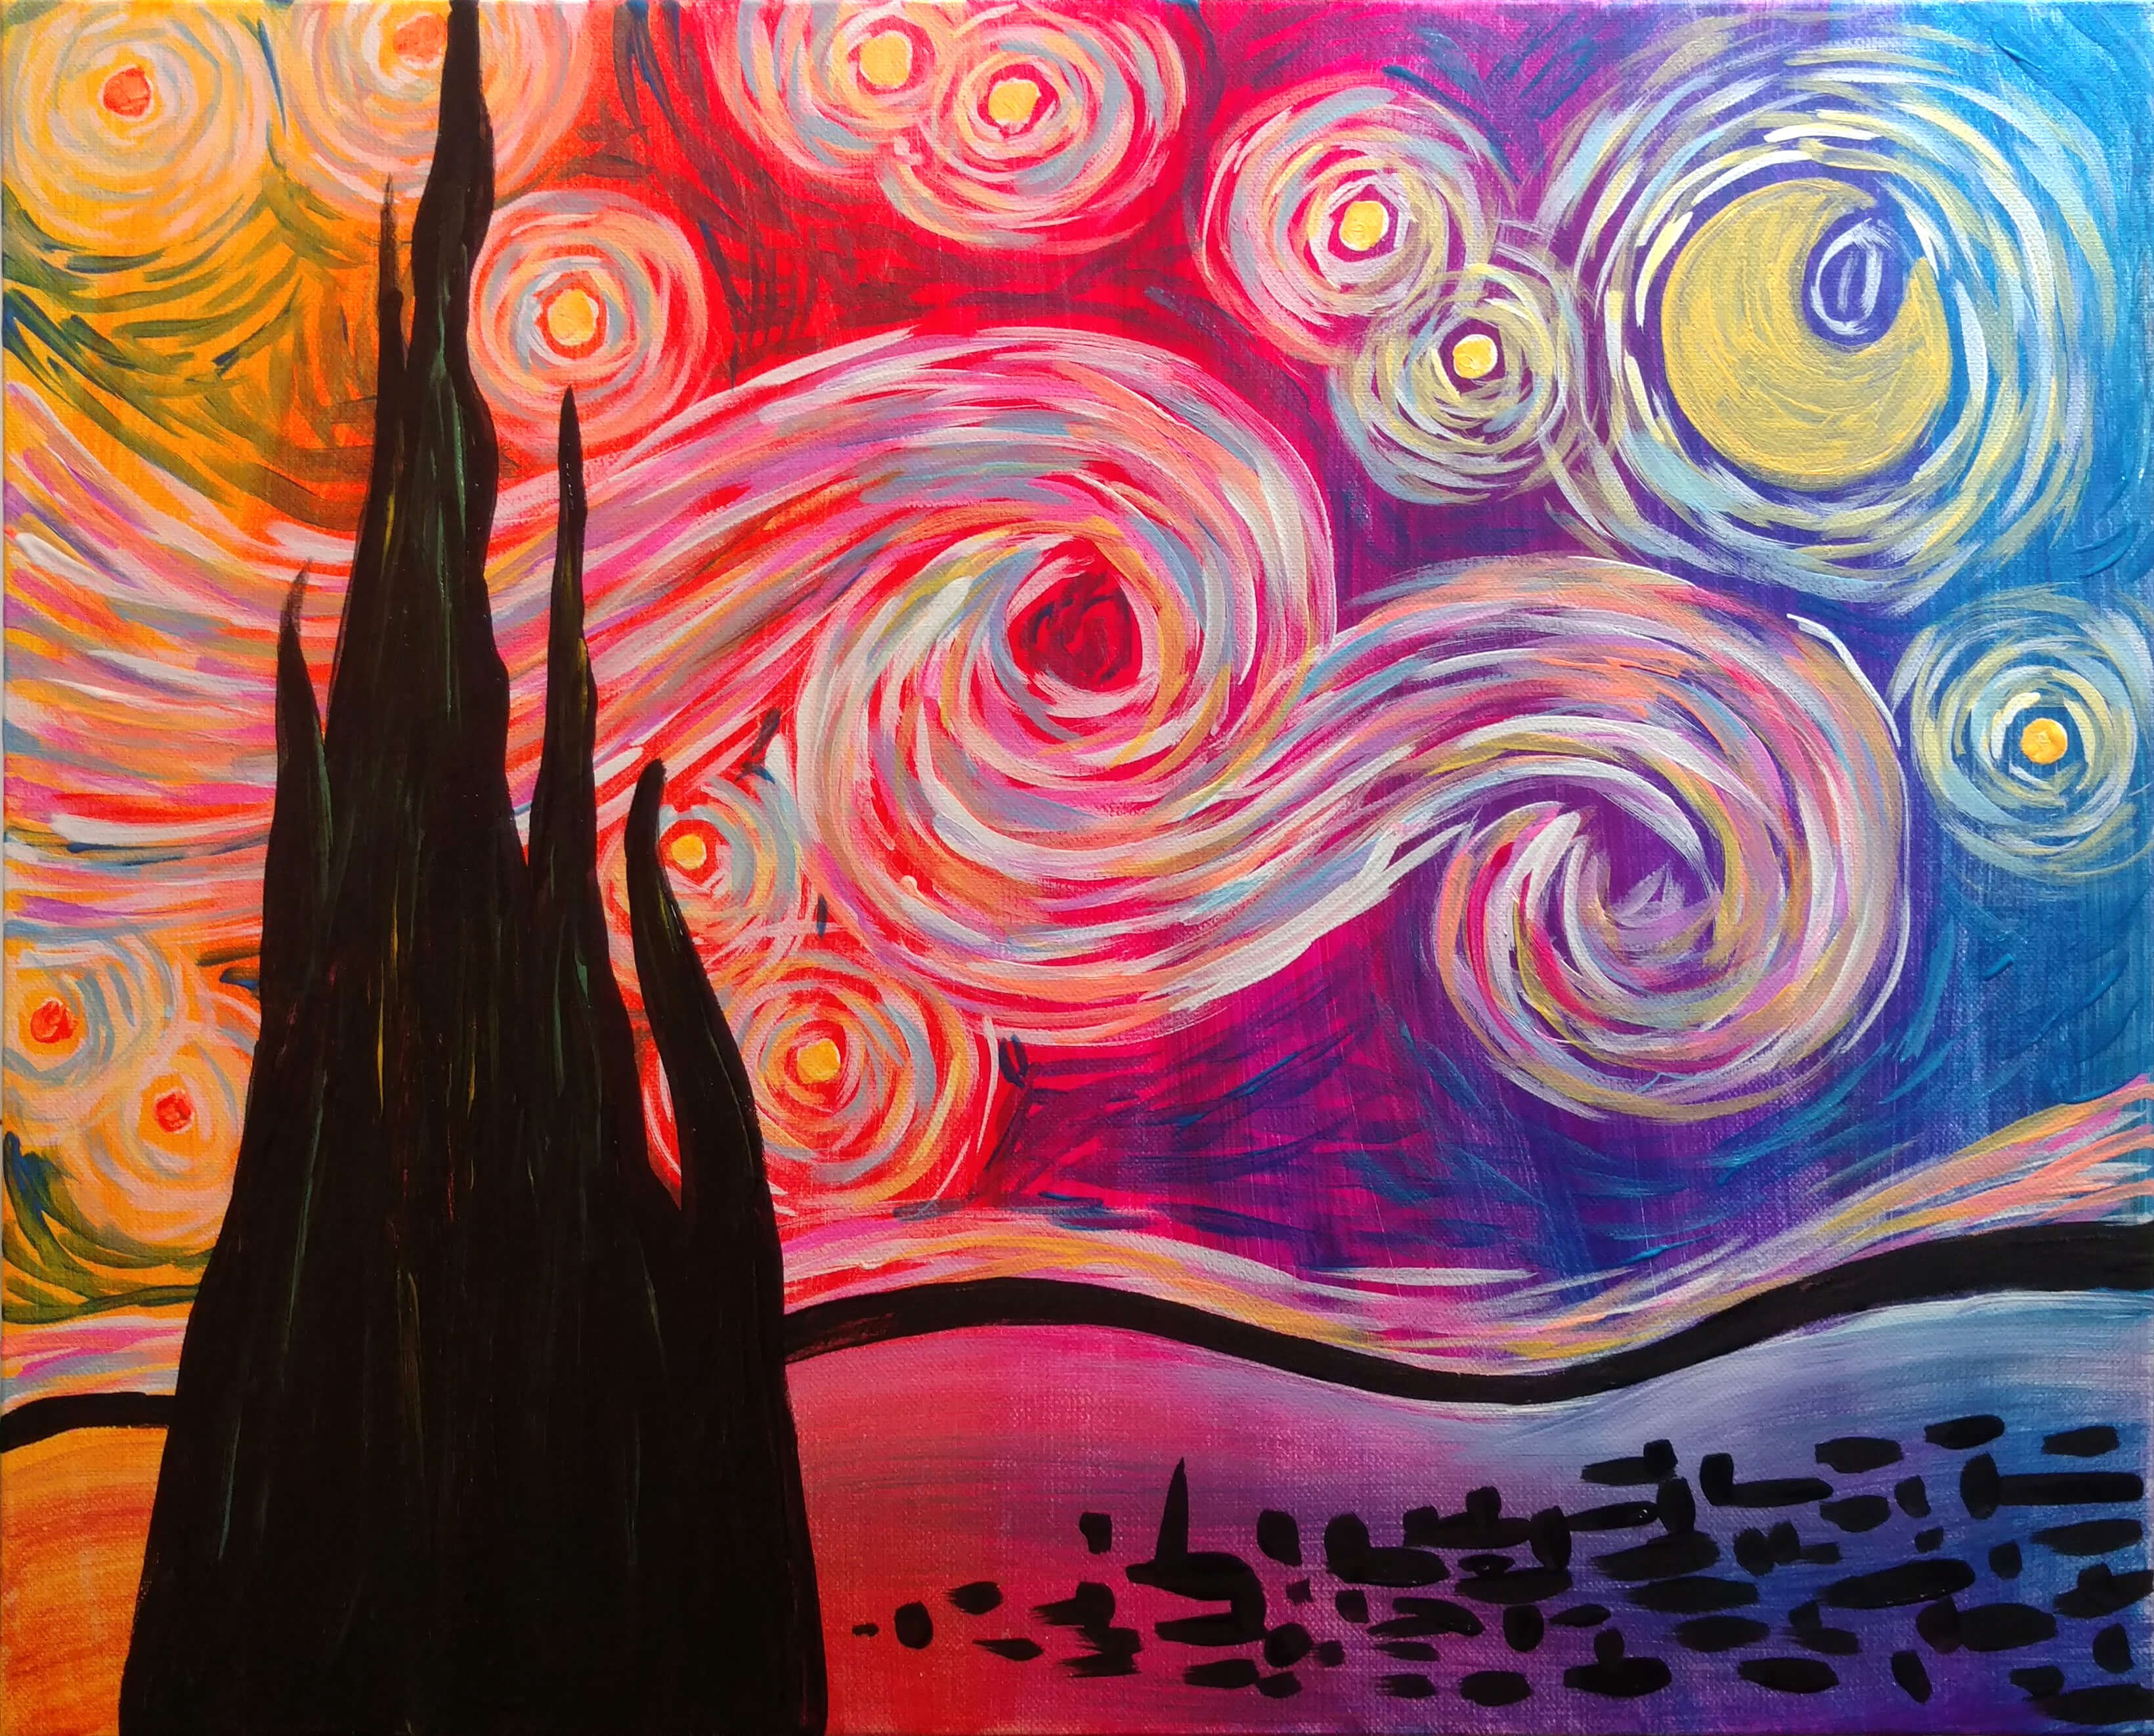 Psychedelic Starry Night - Pinot's Palette Painting